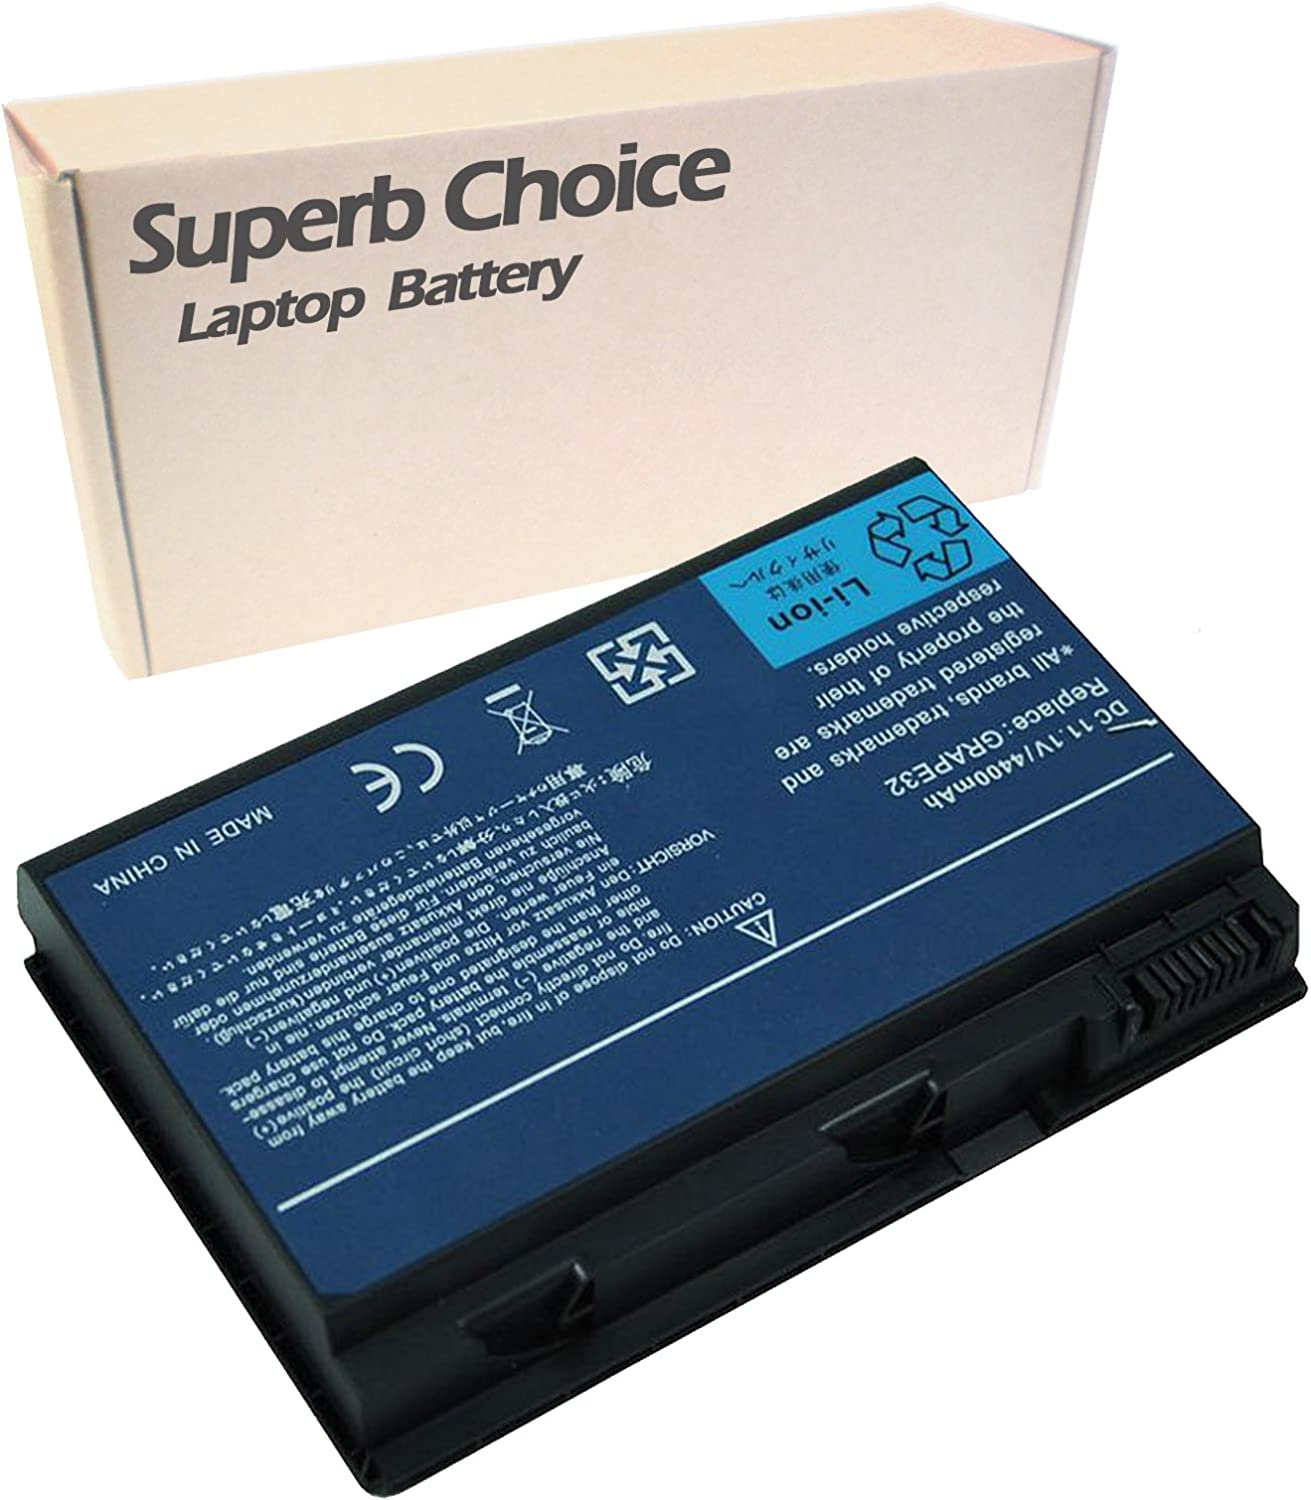 Superb Choice 6-Cell Battery Compatible with ACER Extensa 5420 5420-5687